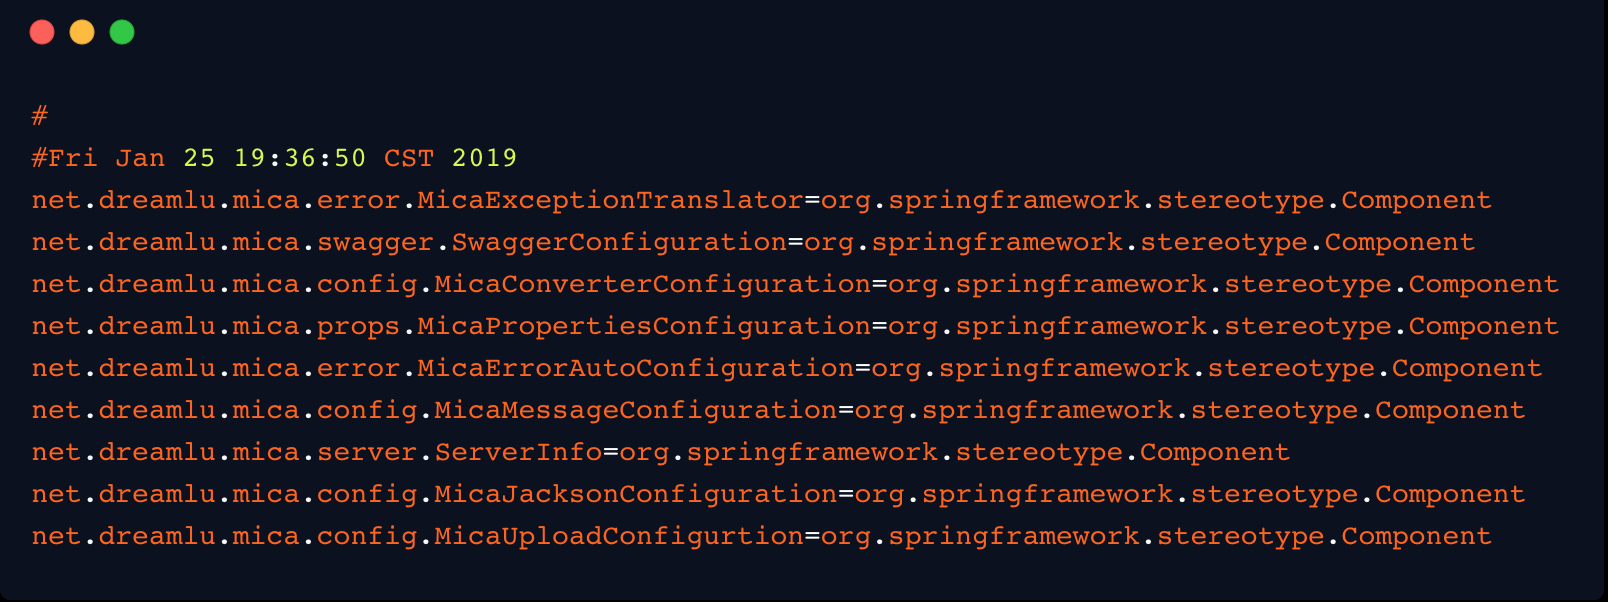 spring.components